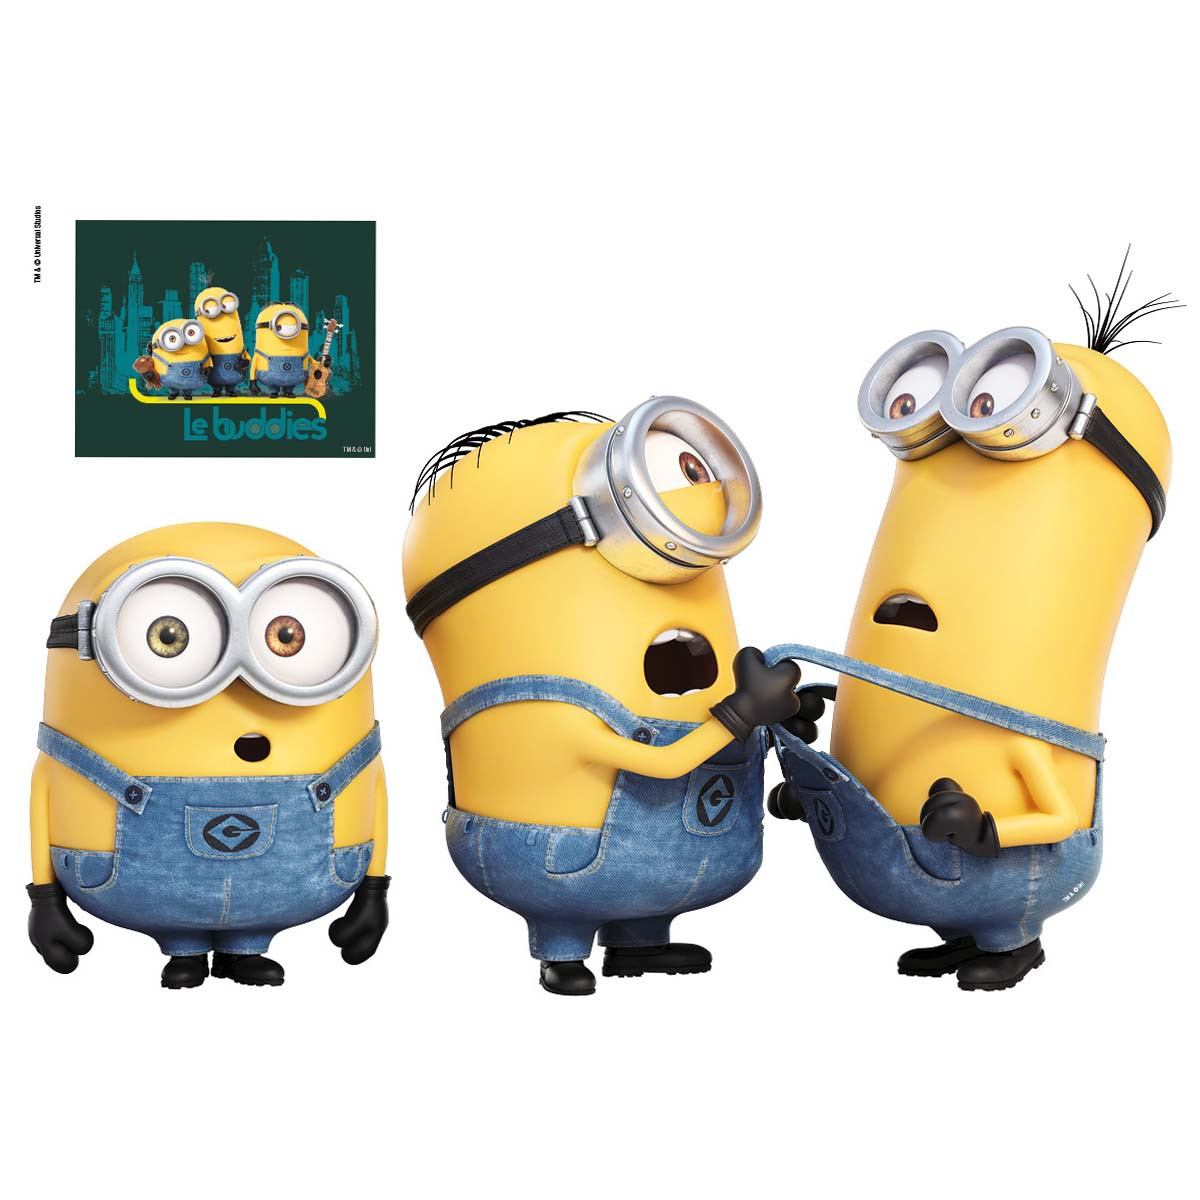 Stickers geant Relax Les Minions